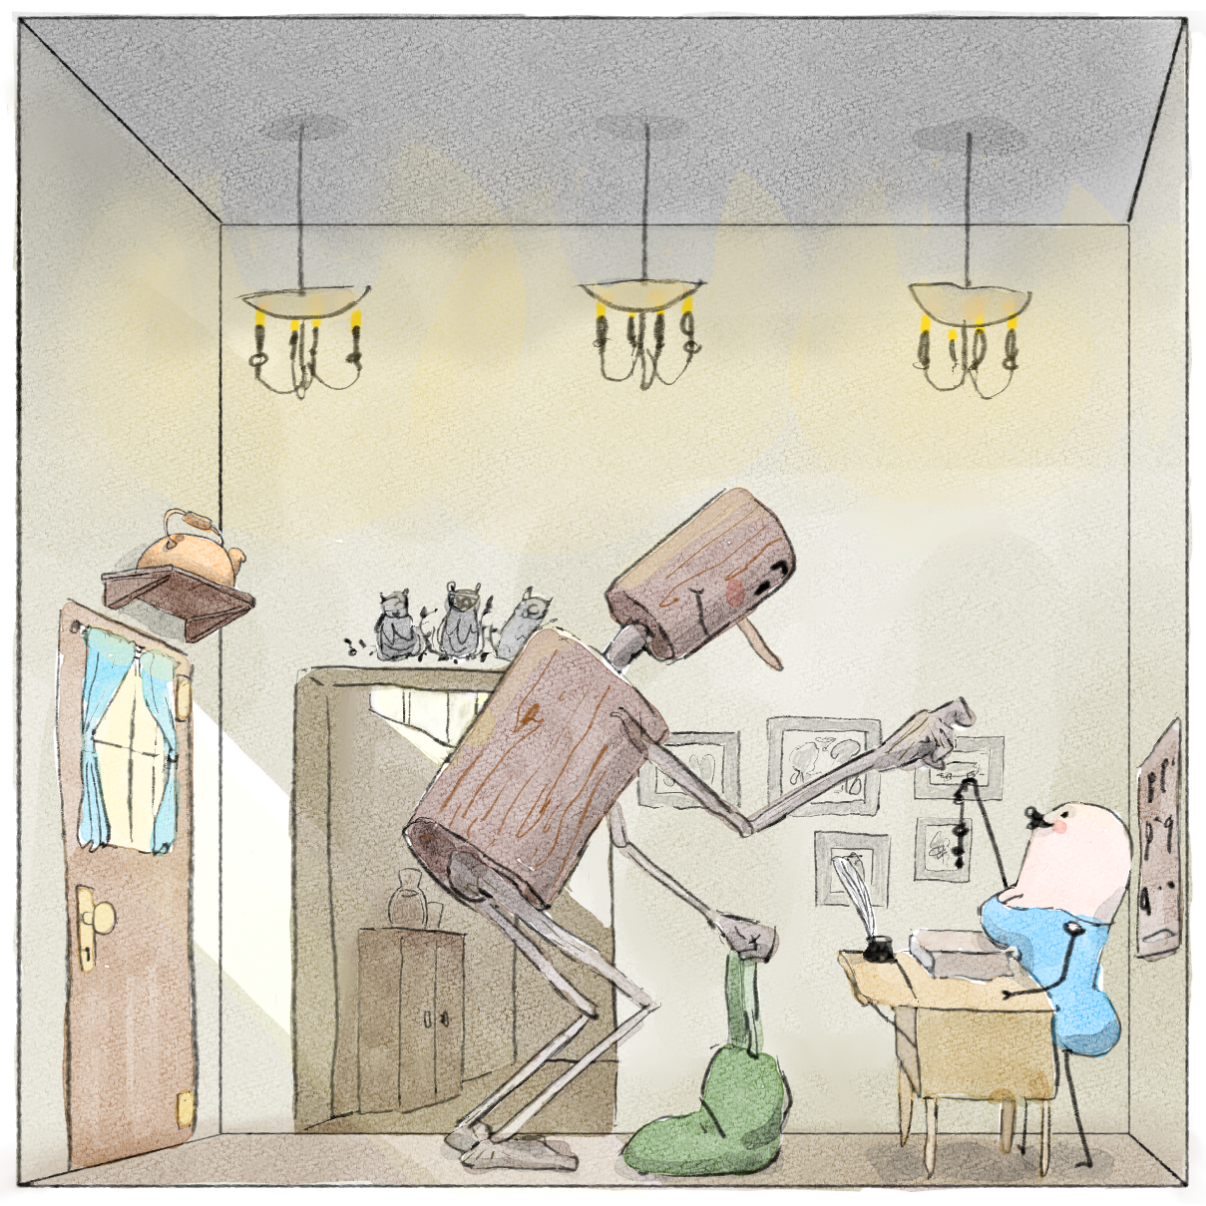 Drawing in The Copper Inn by Potato Man